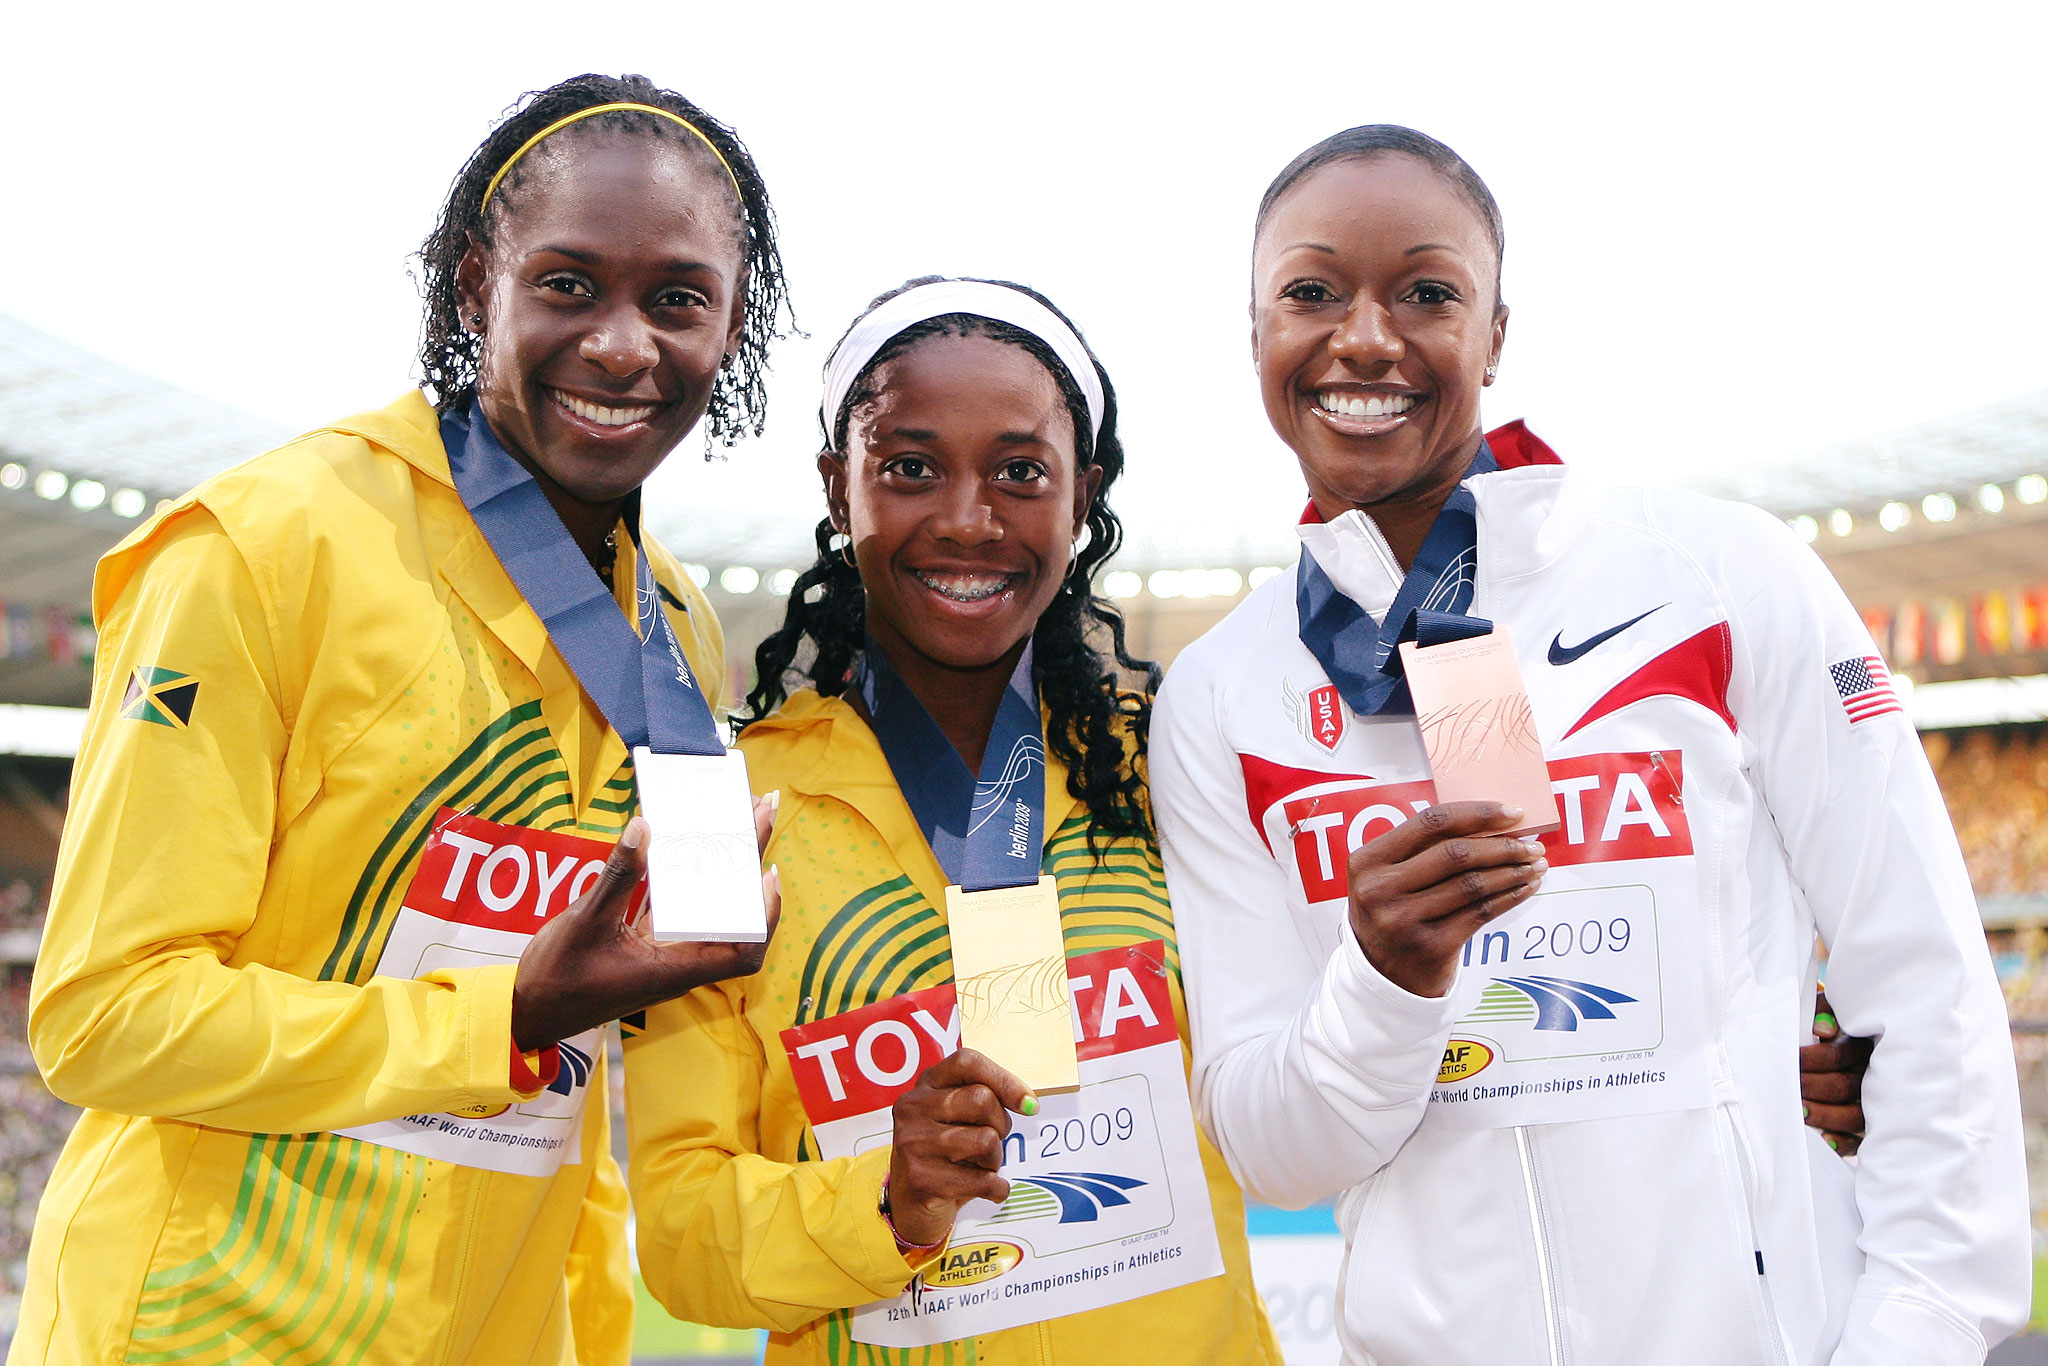 Carmelita Jeter, right, once again took bronze in the 100 meters at the 2009 world championships, finishing in 10.9 seconds, behind gold medalist Shelly-Ann Fraser (middle) and silver medalist Kerron Stewart.